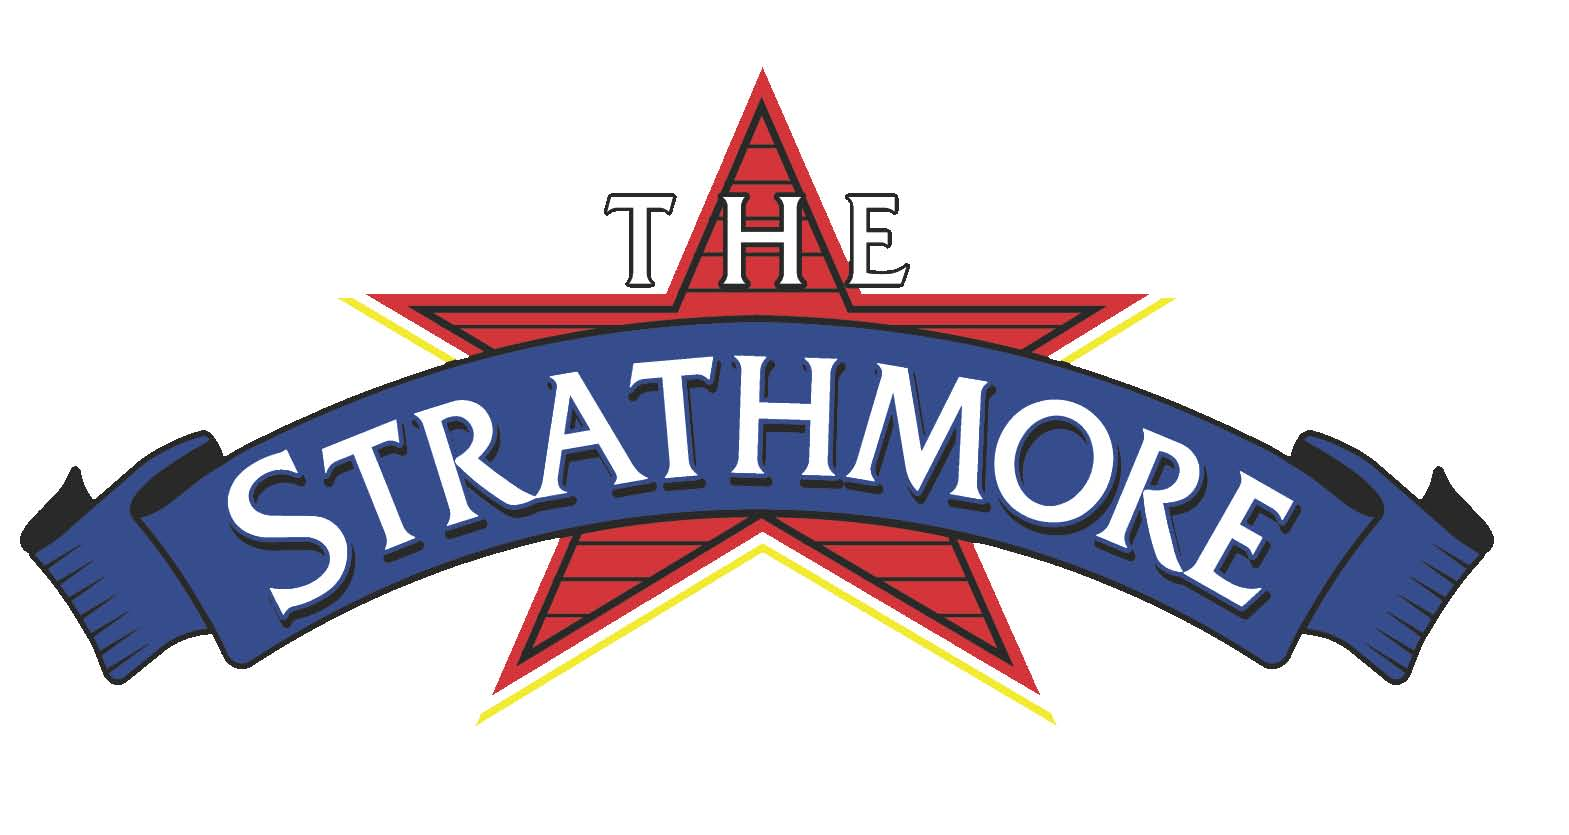 The Strathmore Hotel